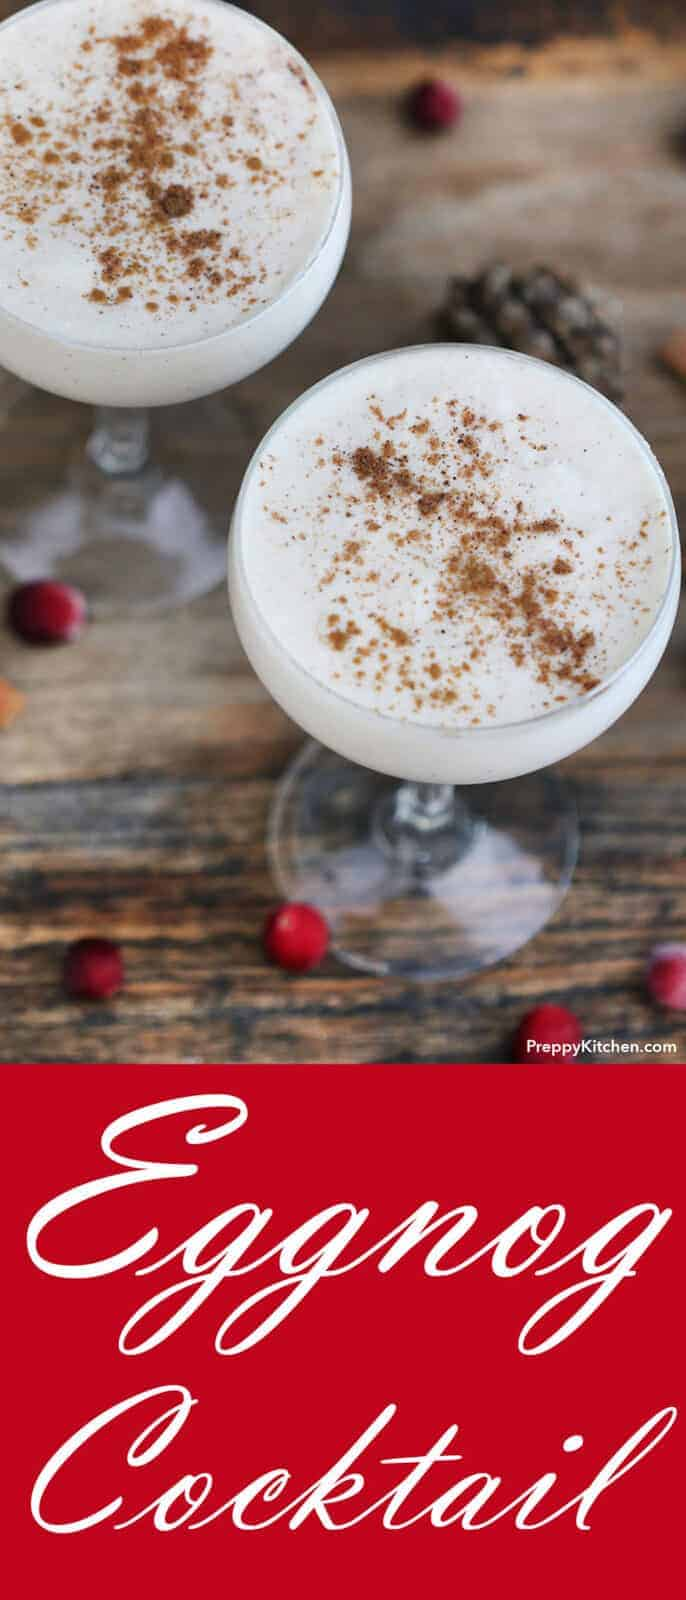 eaa1170b6b72 Eggnog gets such a bad wrap because all the store-bought brands just can t  compete with the homemade version. Most of you wouldn t pour an old  fashioned or ...